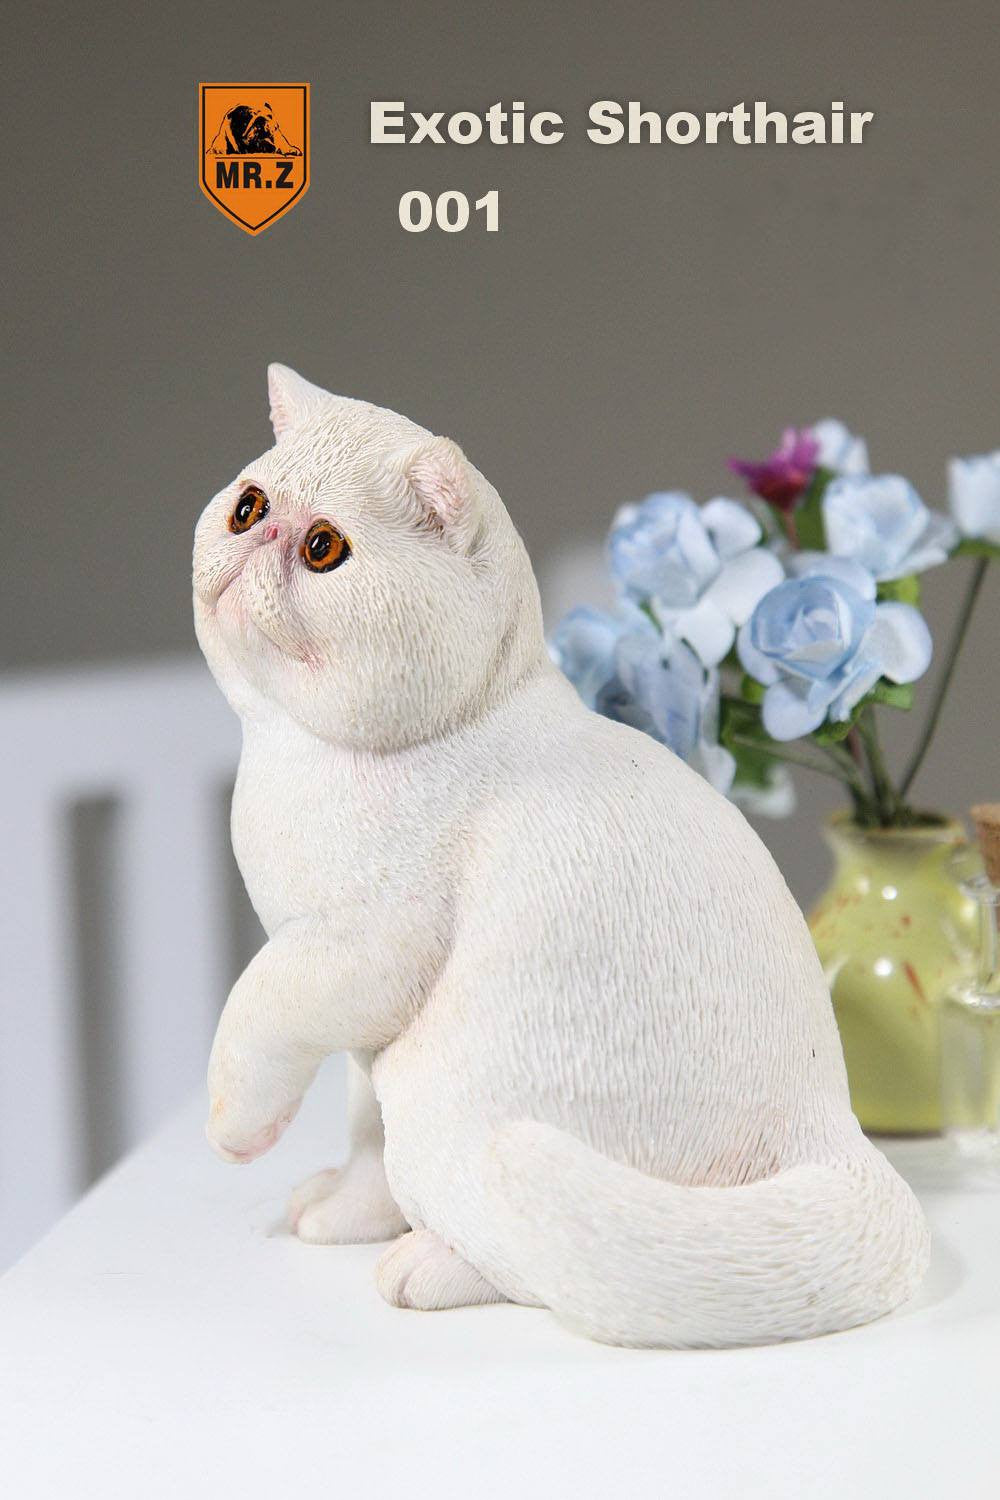 MR.Z - Real Animal Series No.8 - 1/6th Scale Exotic Shorthair Cat (Garfield) 001-005 - Marvelous Toys - 10